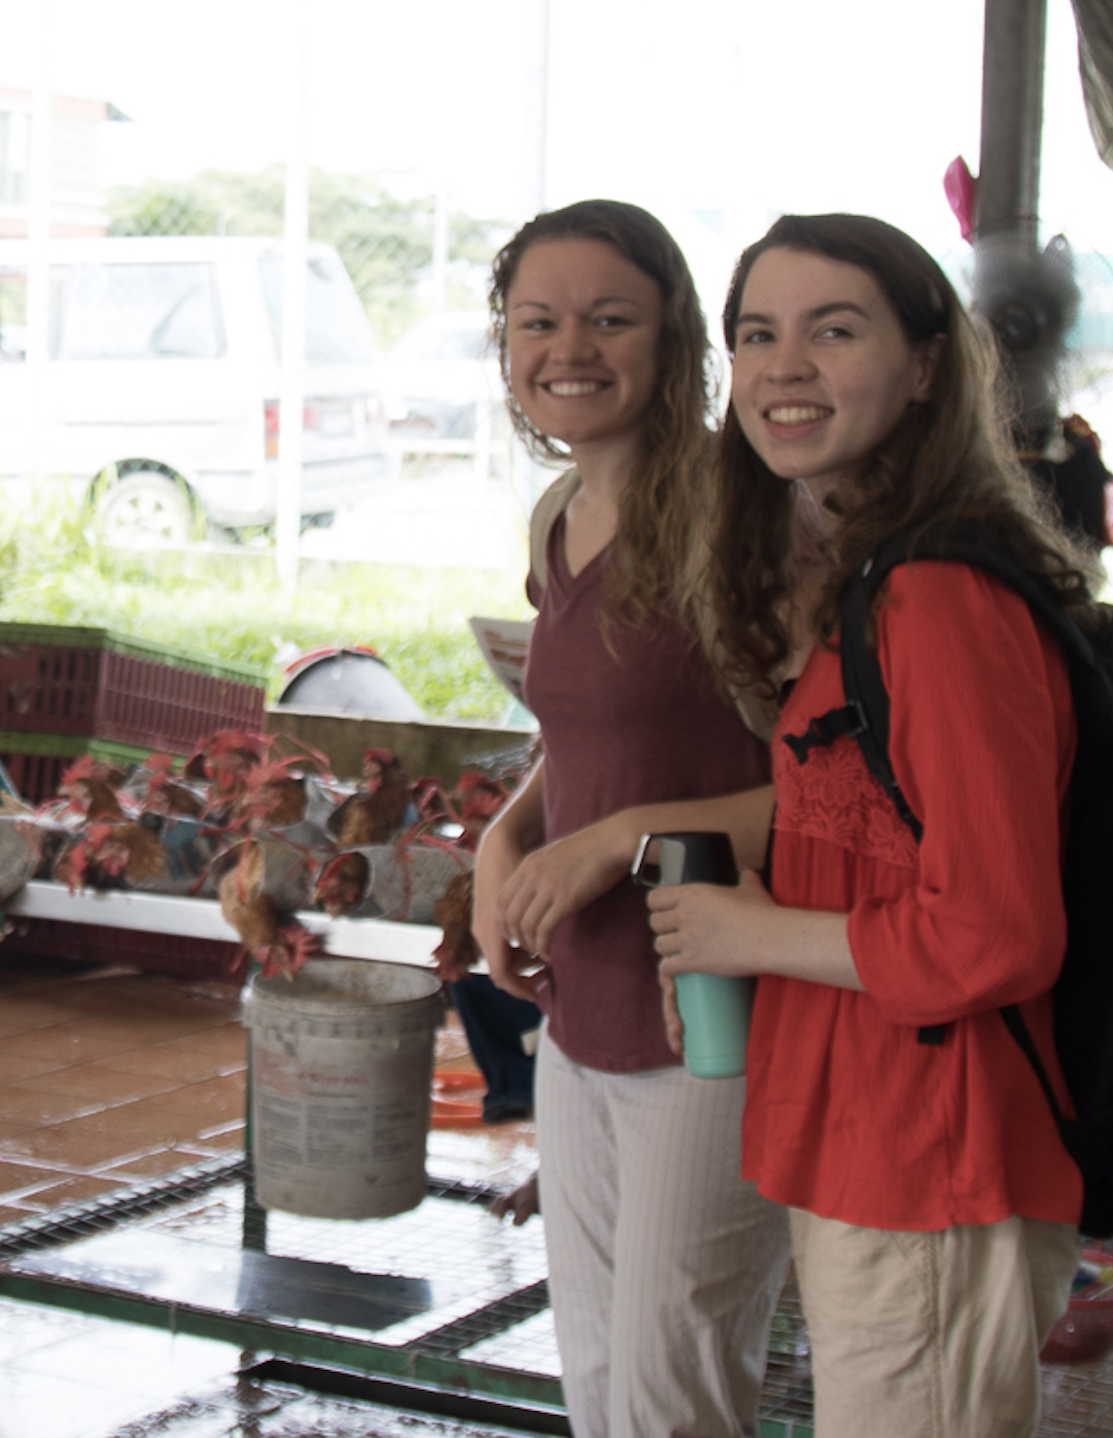 Laura Borkenhagen, MSc (middle), visits an open-air market in Sarawak, Malaysia with two undergraduate students, Rick Tsao (left) and Kerry Mallison (right) for the surveillance study. (PC: Dr. Gregory Gray)